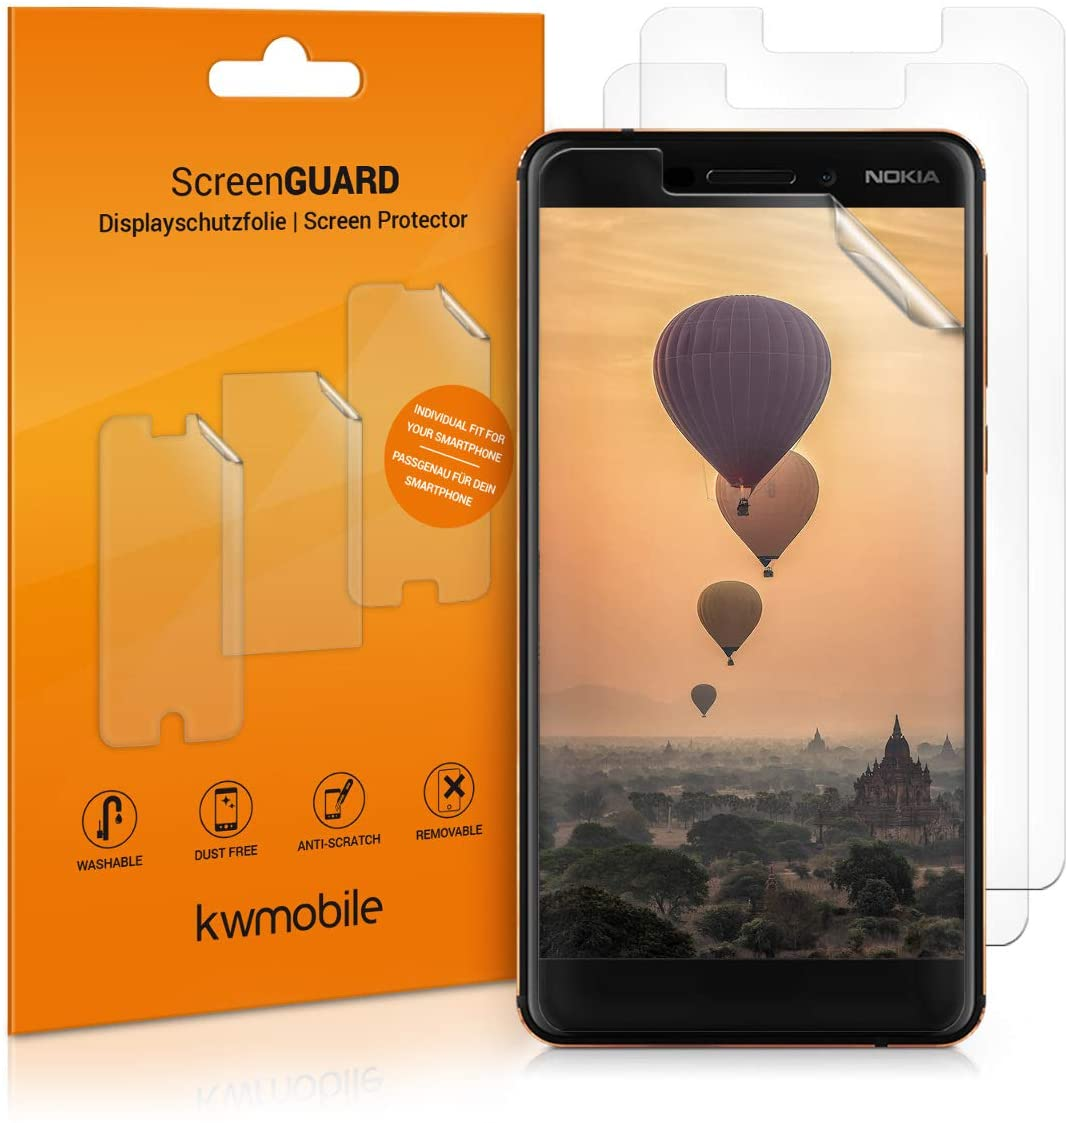 kwmobile Set of 3 Screen Protectors Compatible with Nokia 6.1 (2018) - Crystal Clear Display Film Protector Pack for Mobile Cell Phone